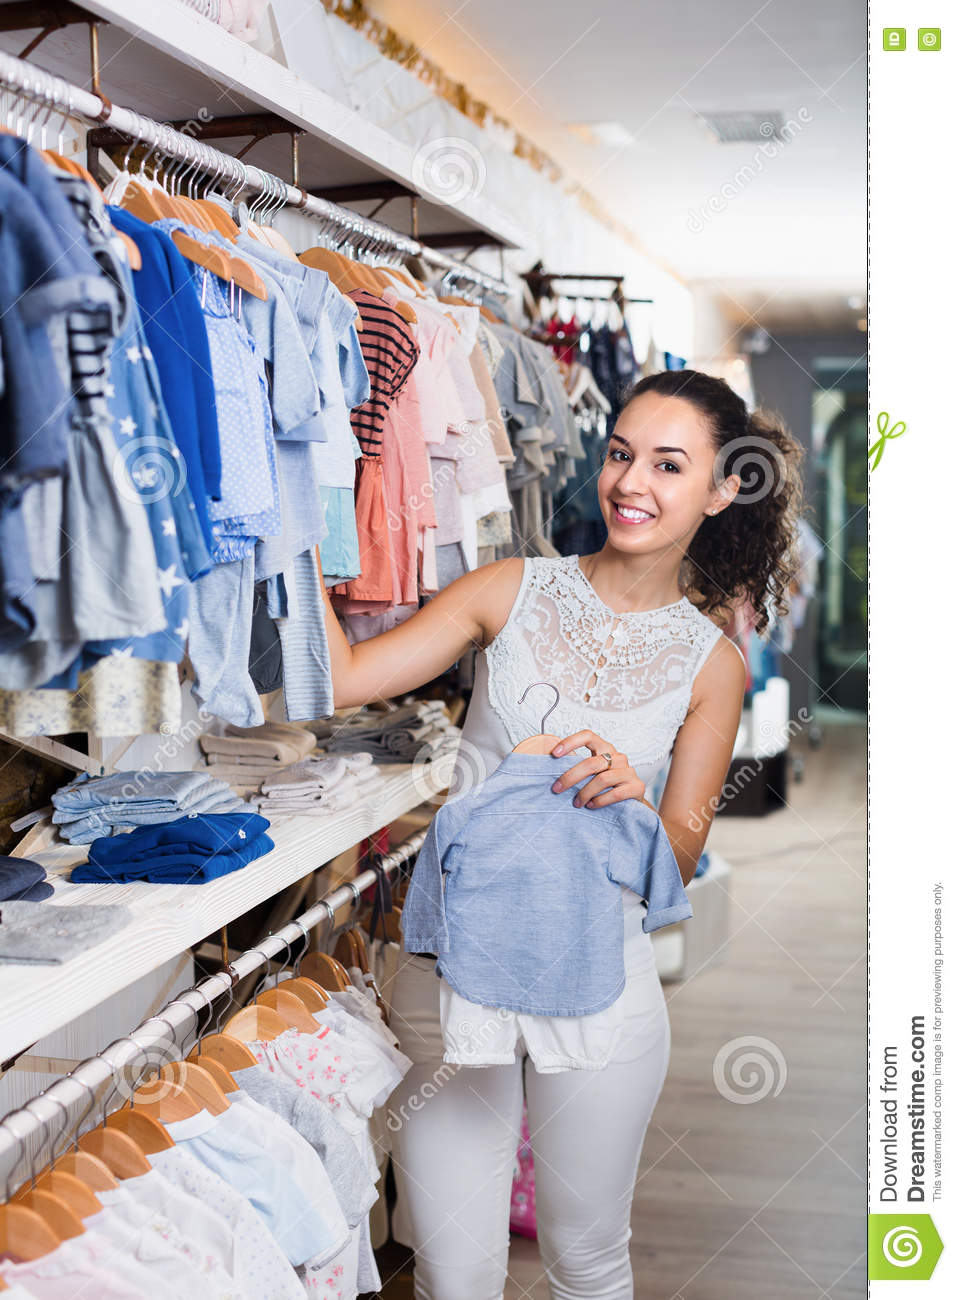 68009a7a2e Young cheerful woman holding blue baby clothes in kids apparel boutique.  More similar stock images